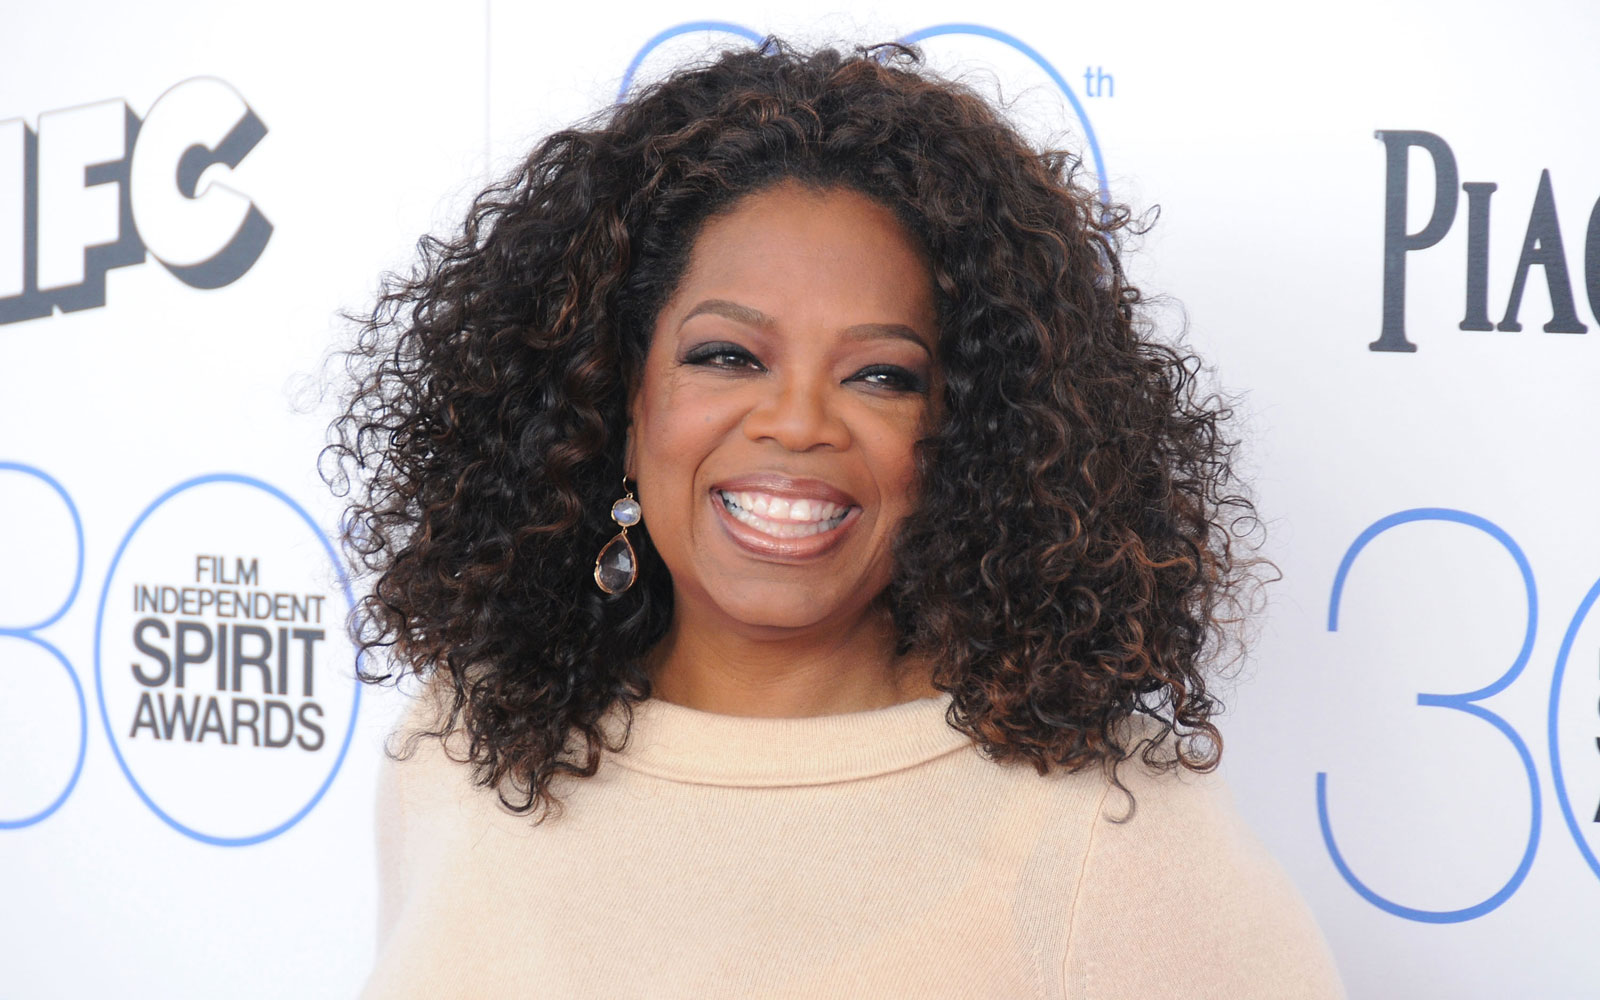 How to Go on a Holland America Cruise With Oprah Winfrey